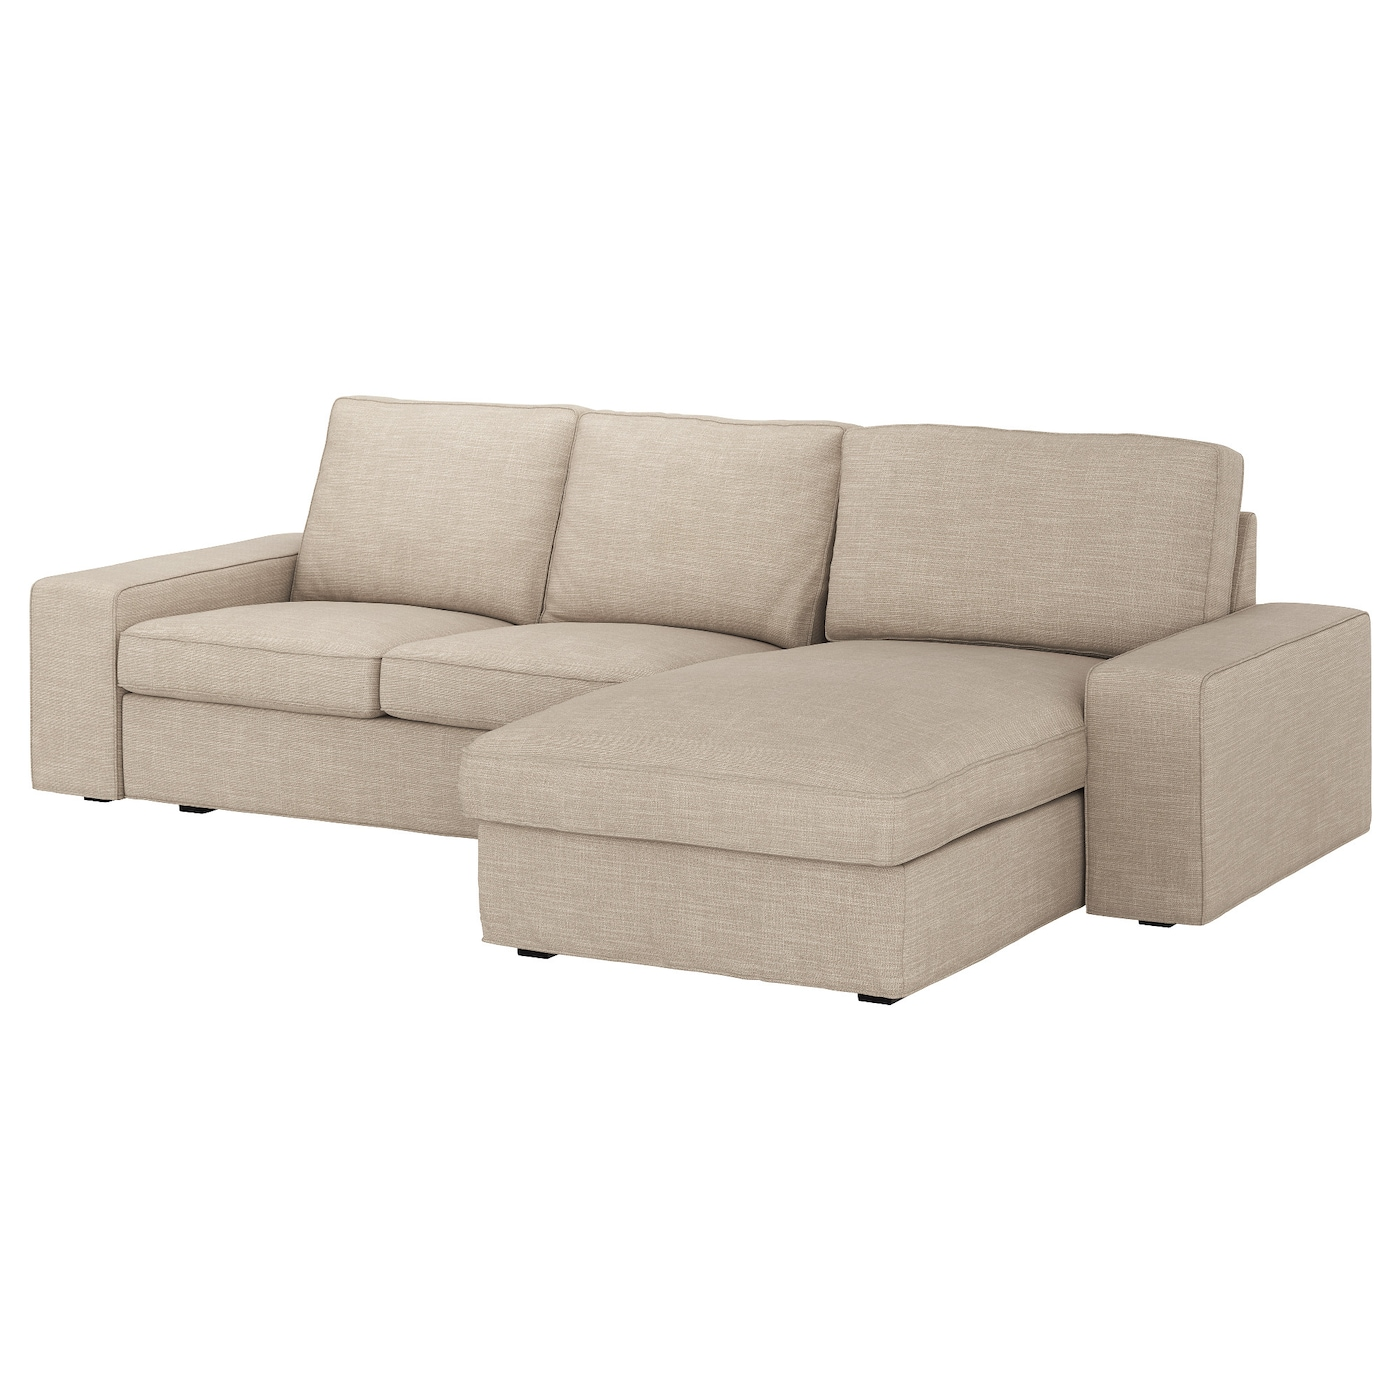 Kivik 3 seat sofa with chaise longue hillared beige ikea for Beiges sofa welche wandfarbe